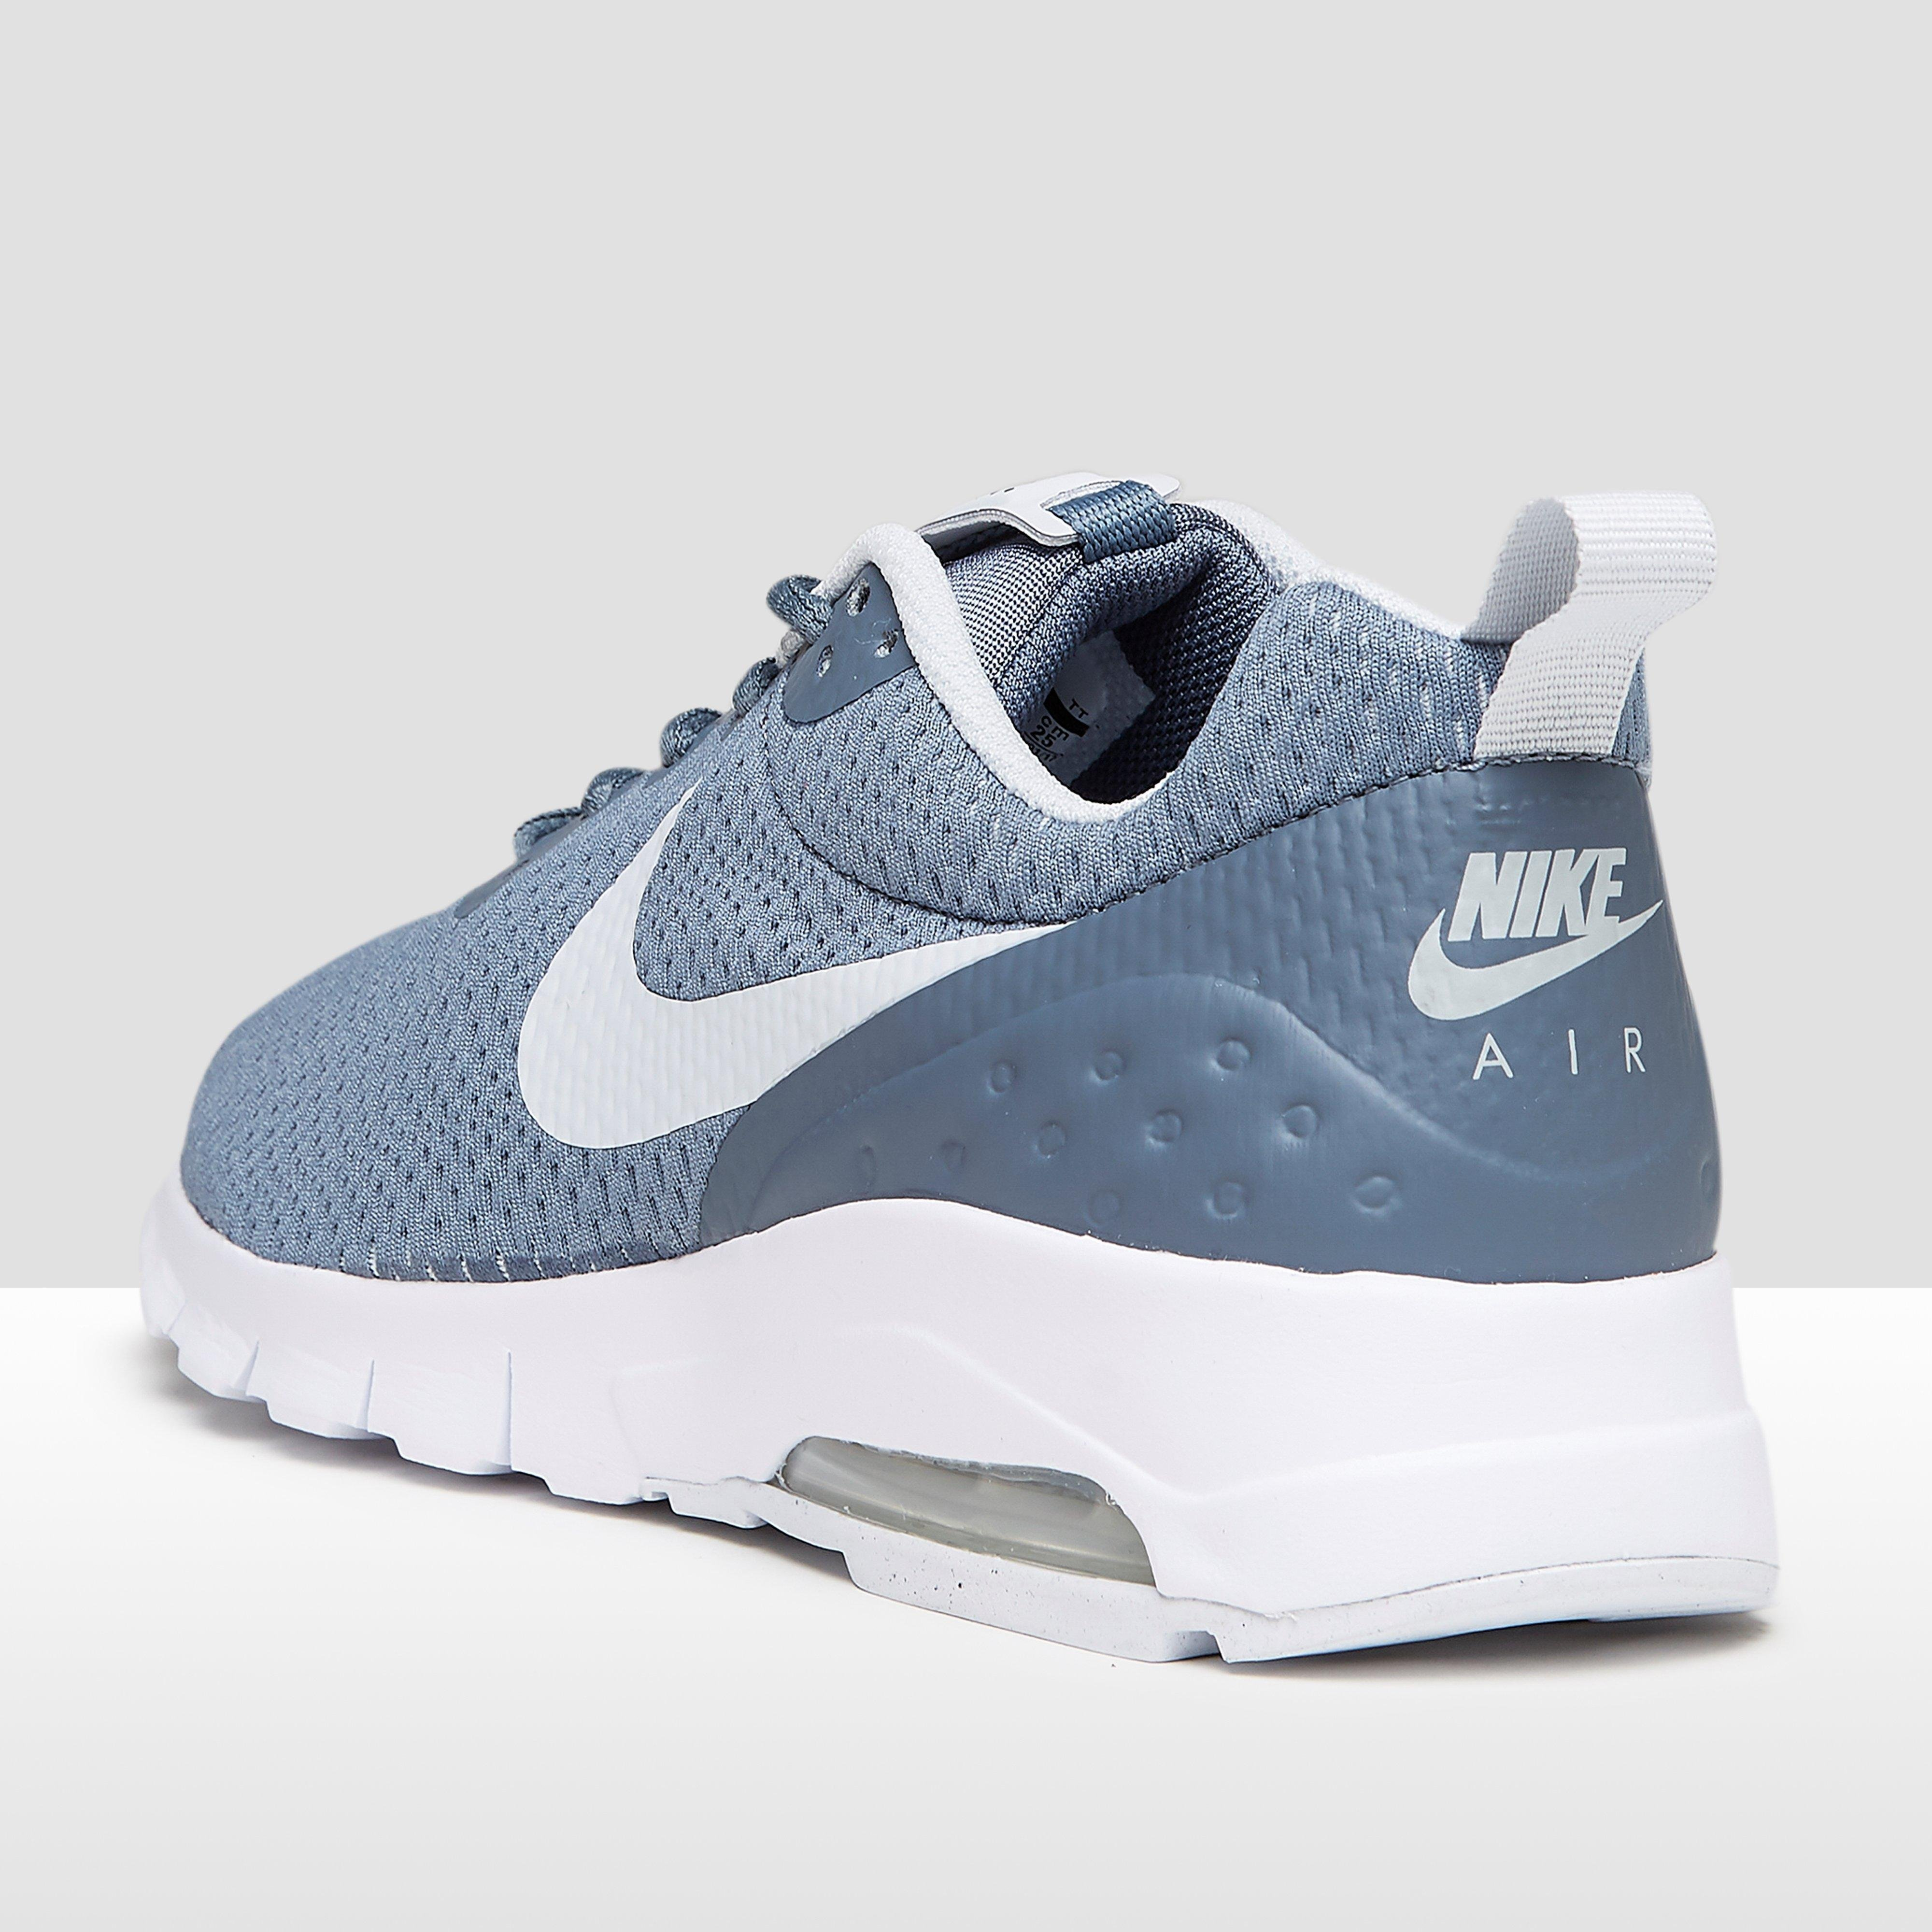 Nike - Baskets Air Max Mouvement Faible Course - Dames - Baskets - Bleu - 40,5